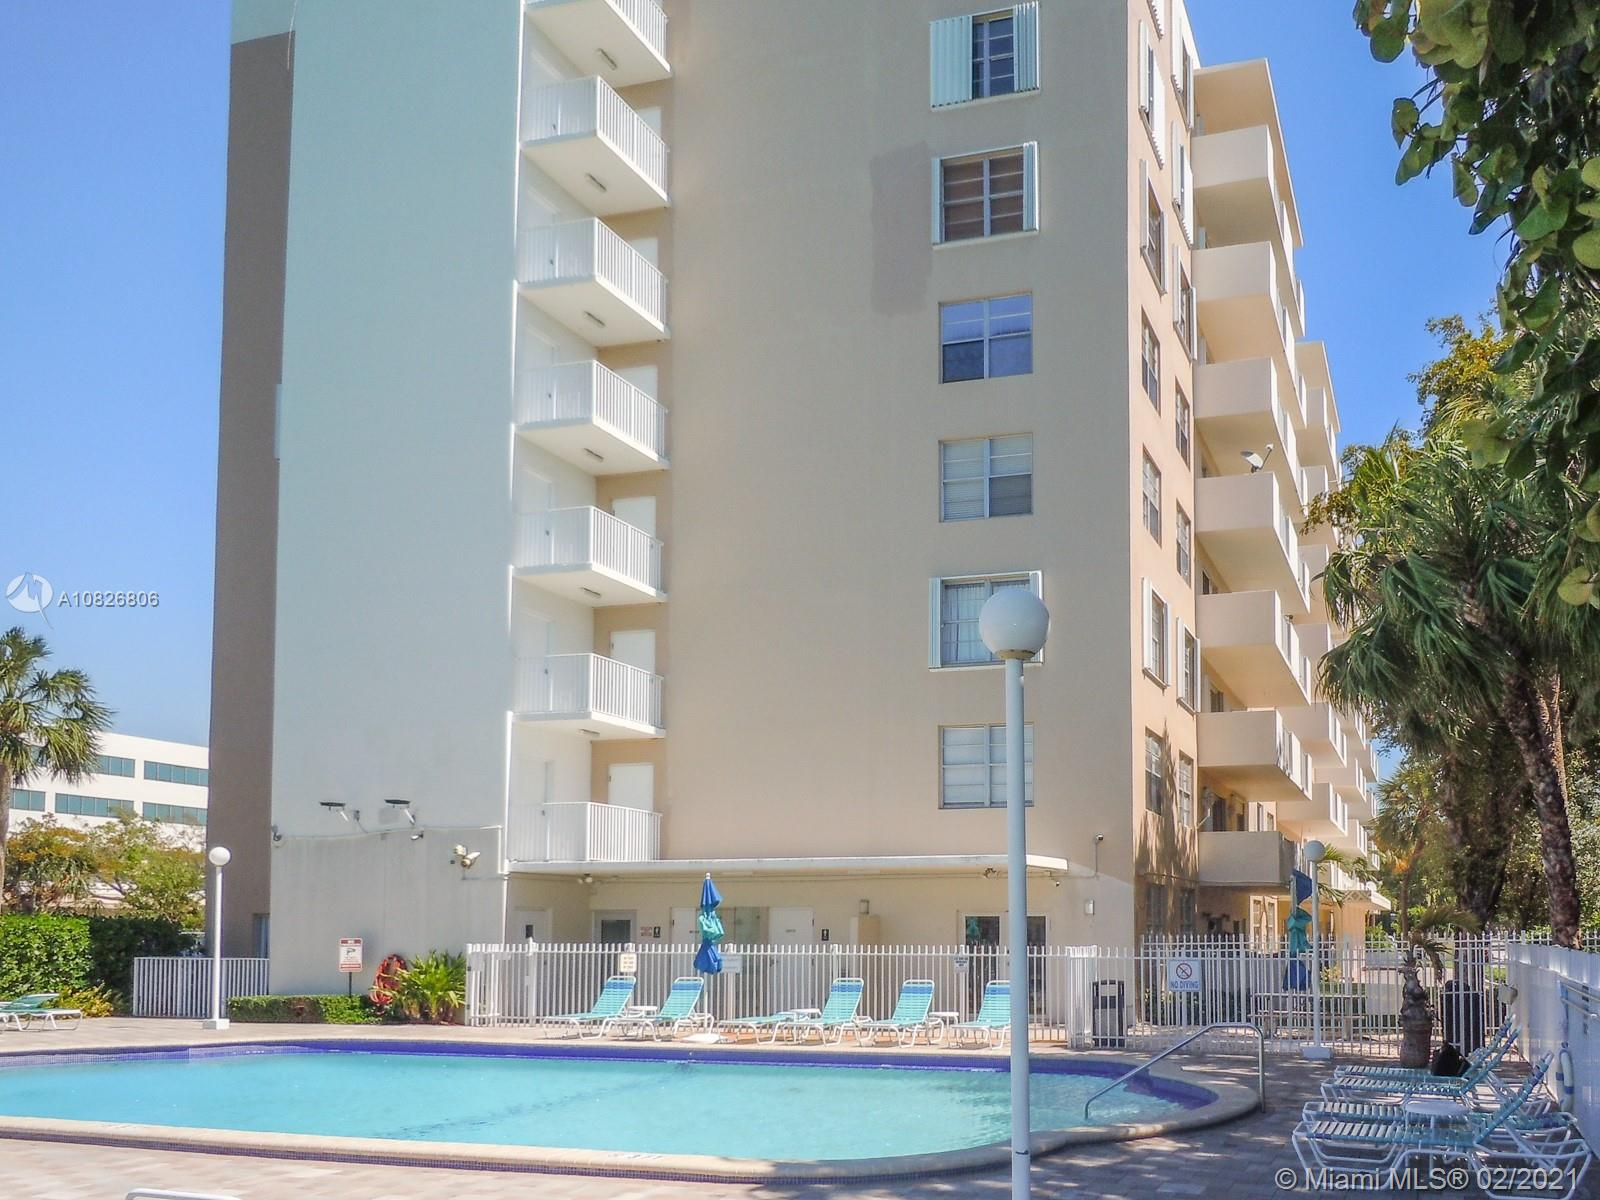 Island Place, 1455 N Treasure Dr Unit 7 D, North Bay Village, Florida 33141, image 42